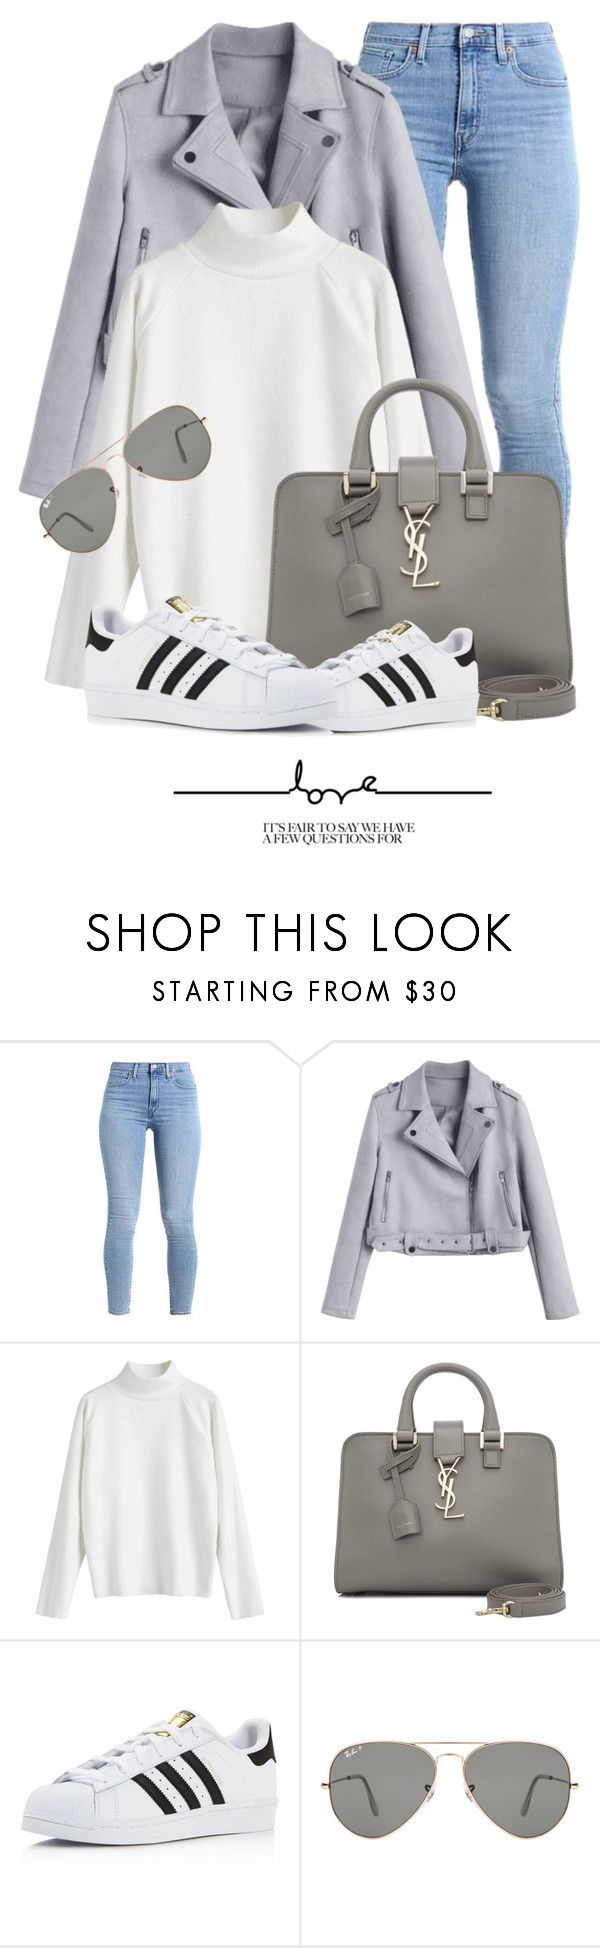 """Outfit Of The Day"" by monmondefou ❤ liked on Polyvore featuring Yves Saint Laurent, adidas, Ray-Ban and gray"